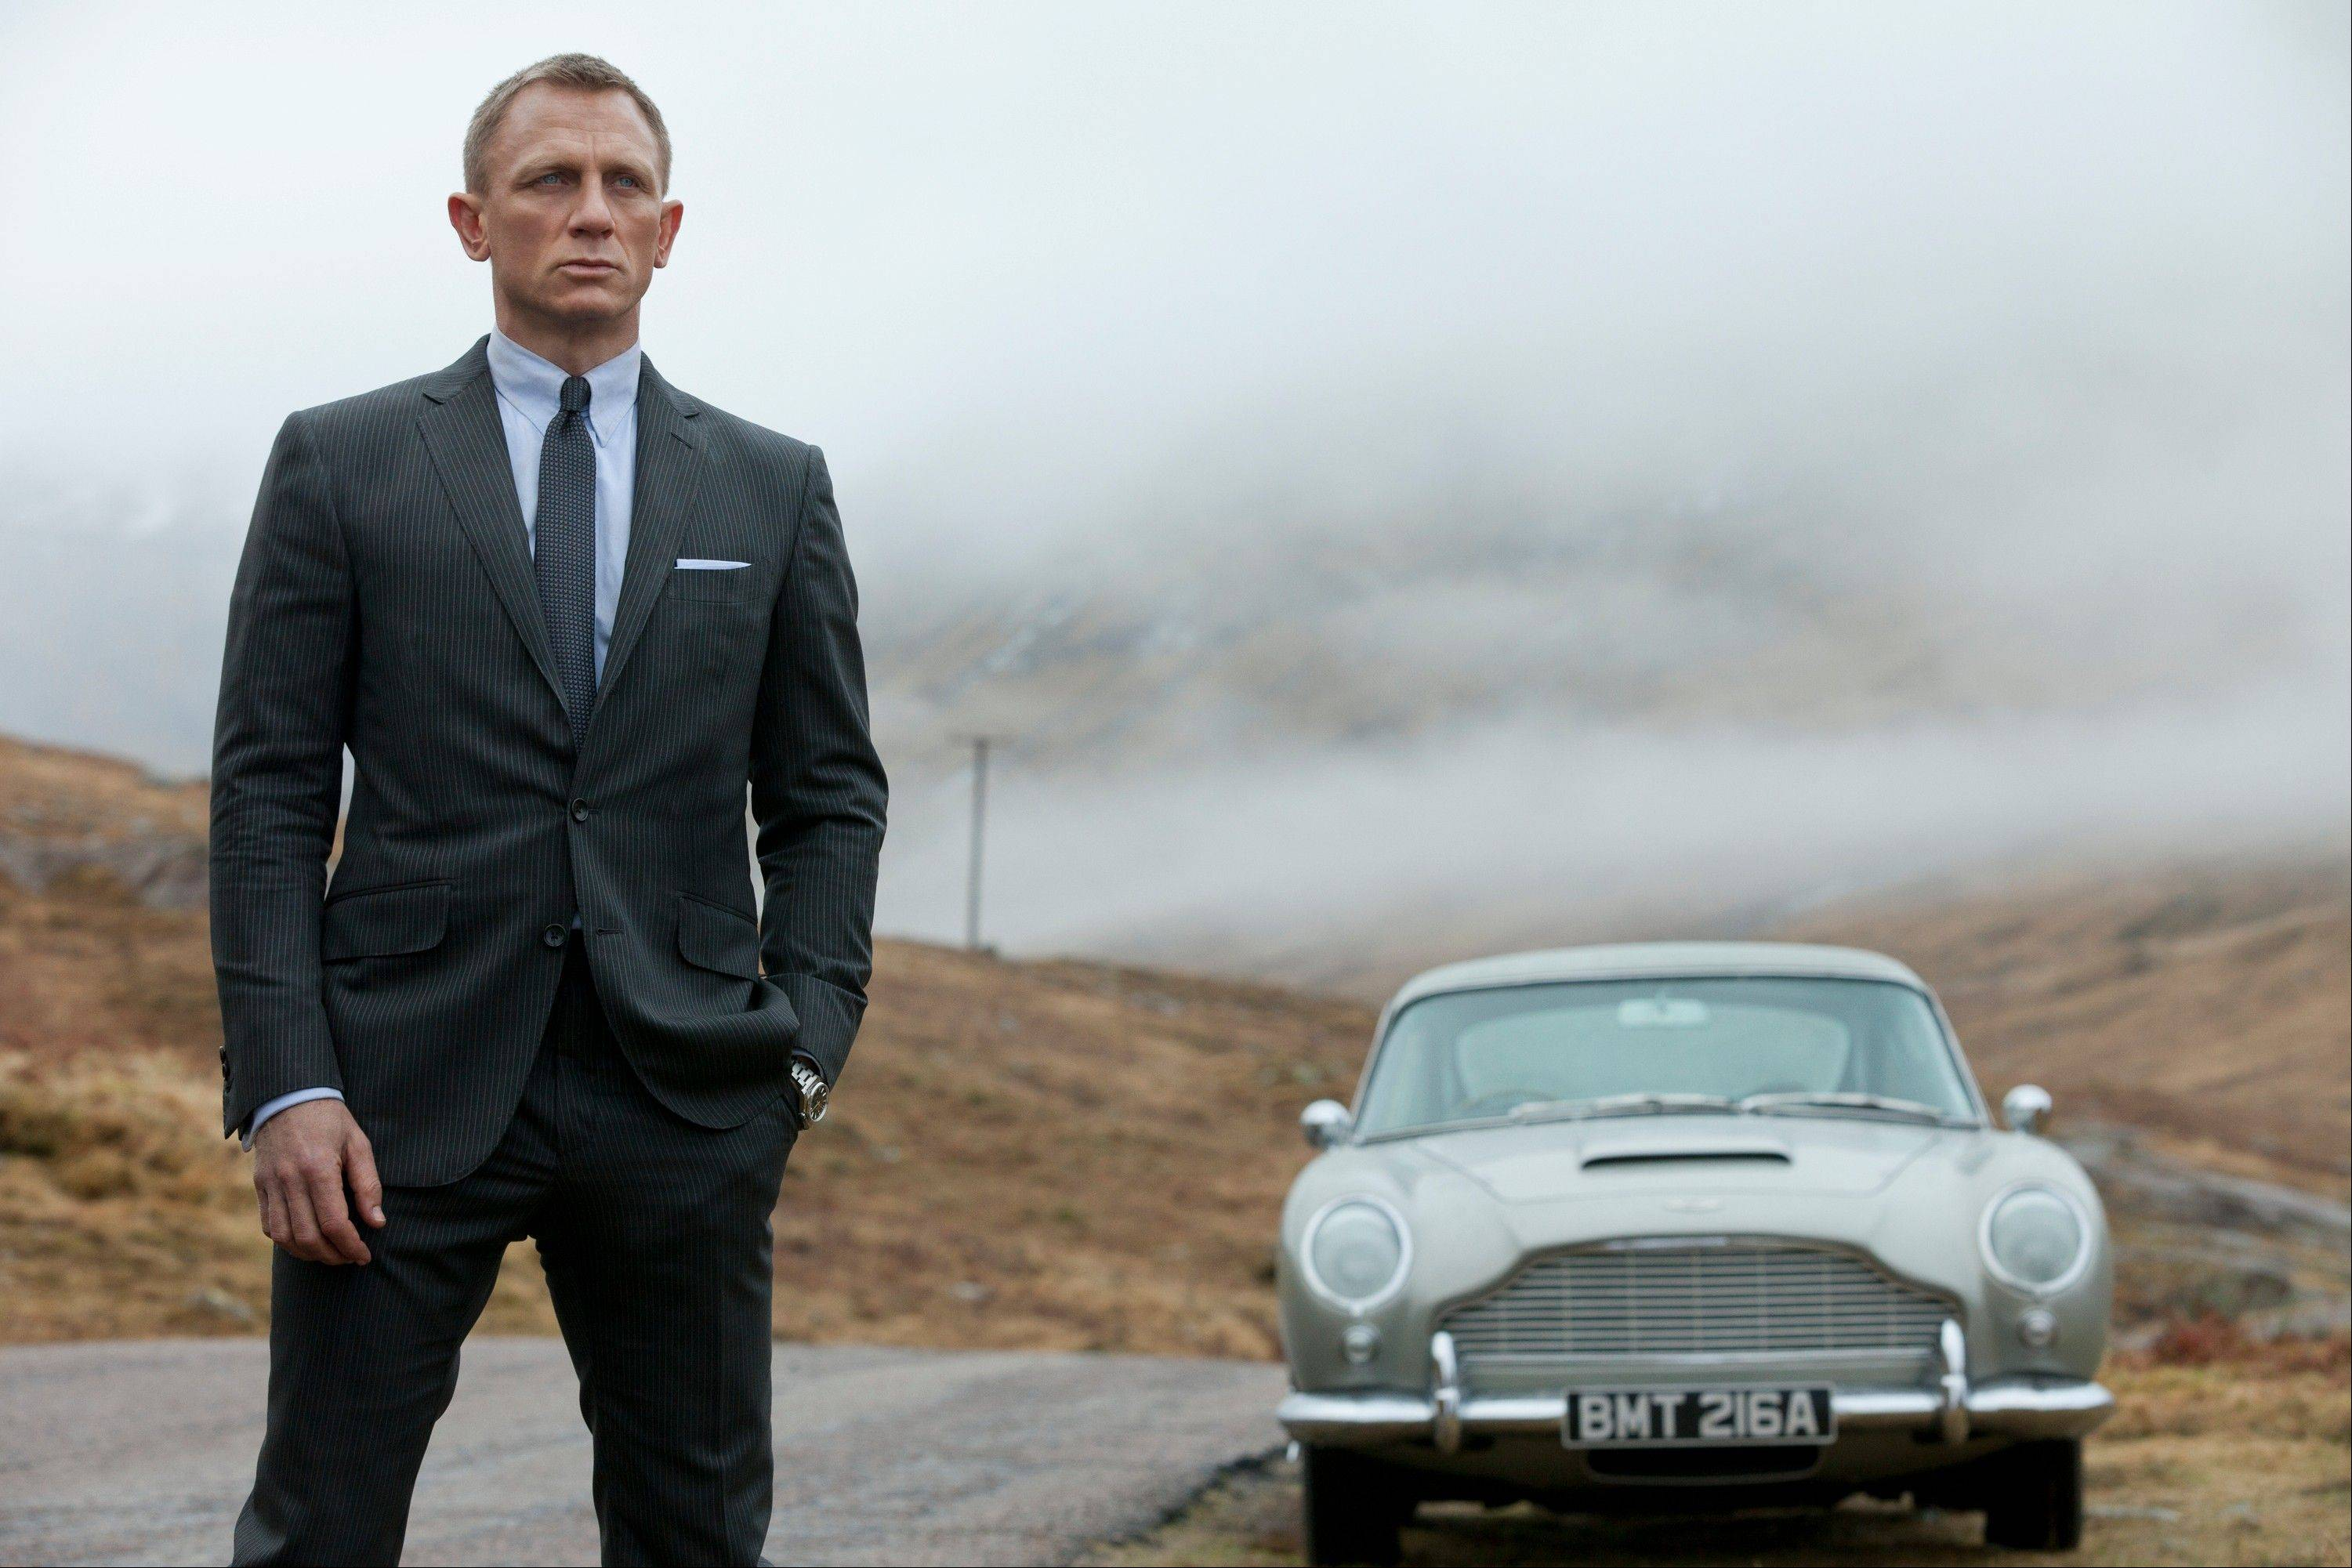 James Bond and Daniel Craig dominated a lot of pop culture headlines in 2012.